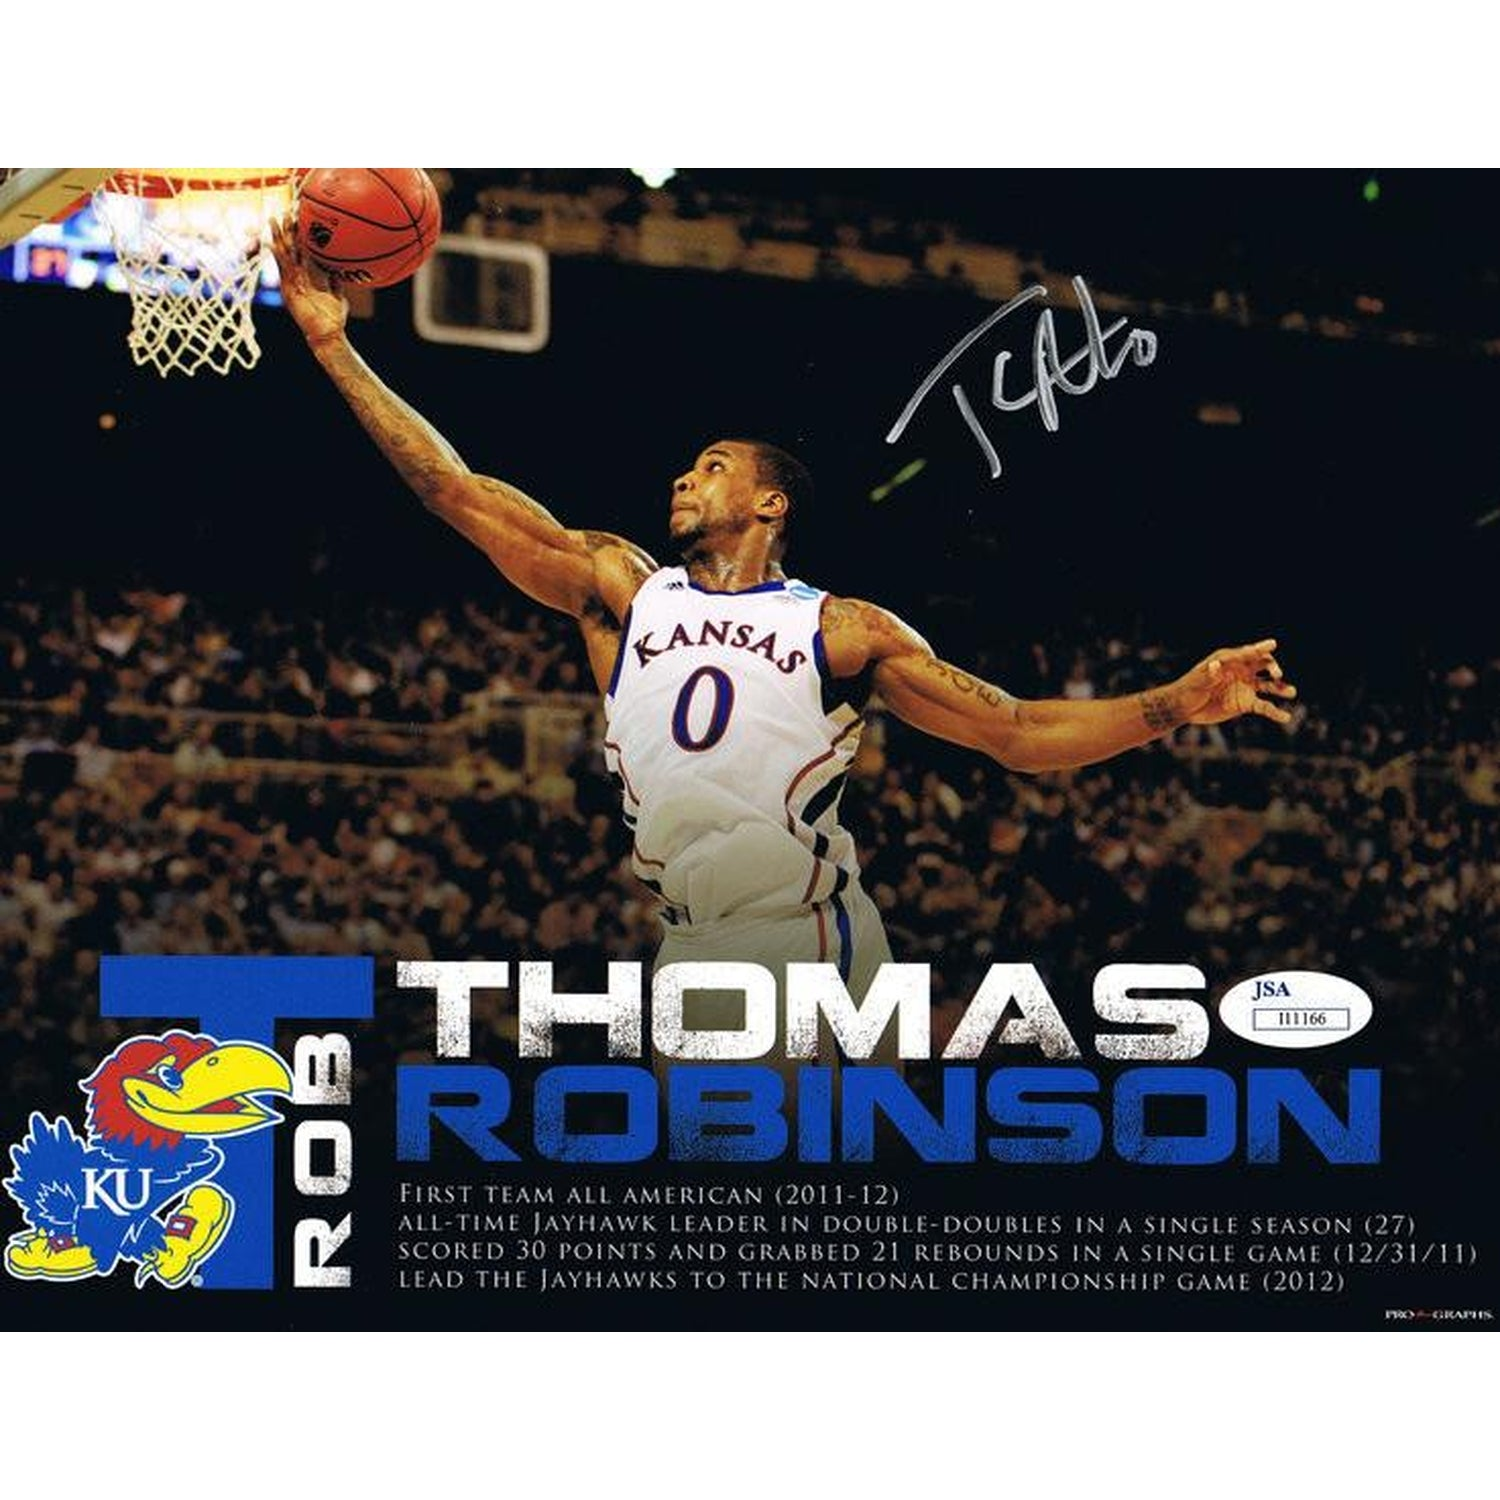 Thomas Robinson Signed Kansas Basketball 8x10 Autographed Photo JSA-Powers Sports Memorabilia